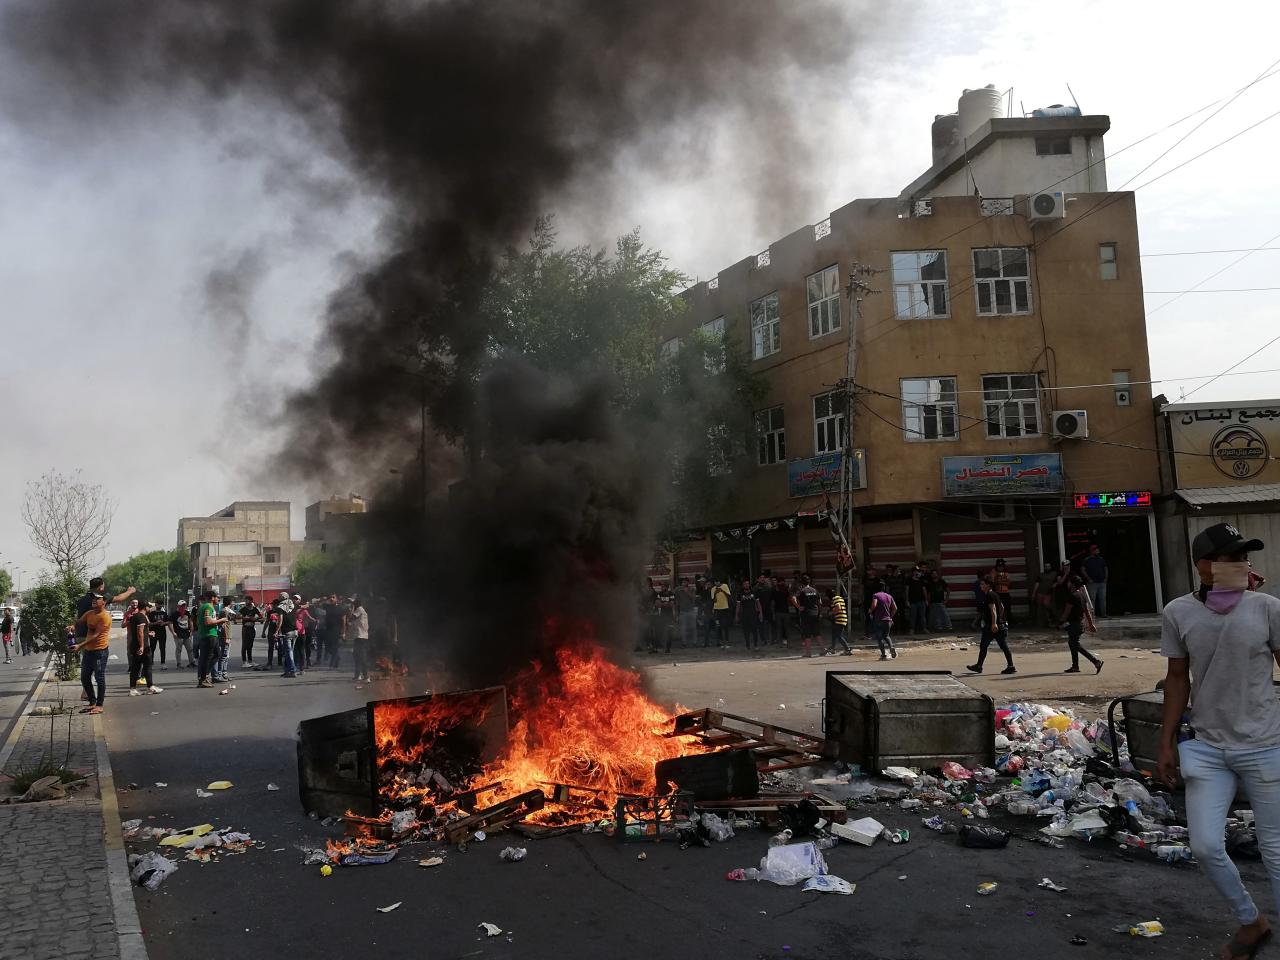 The Latest: Curfews imposed in some Iraqi cities amid unrest